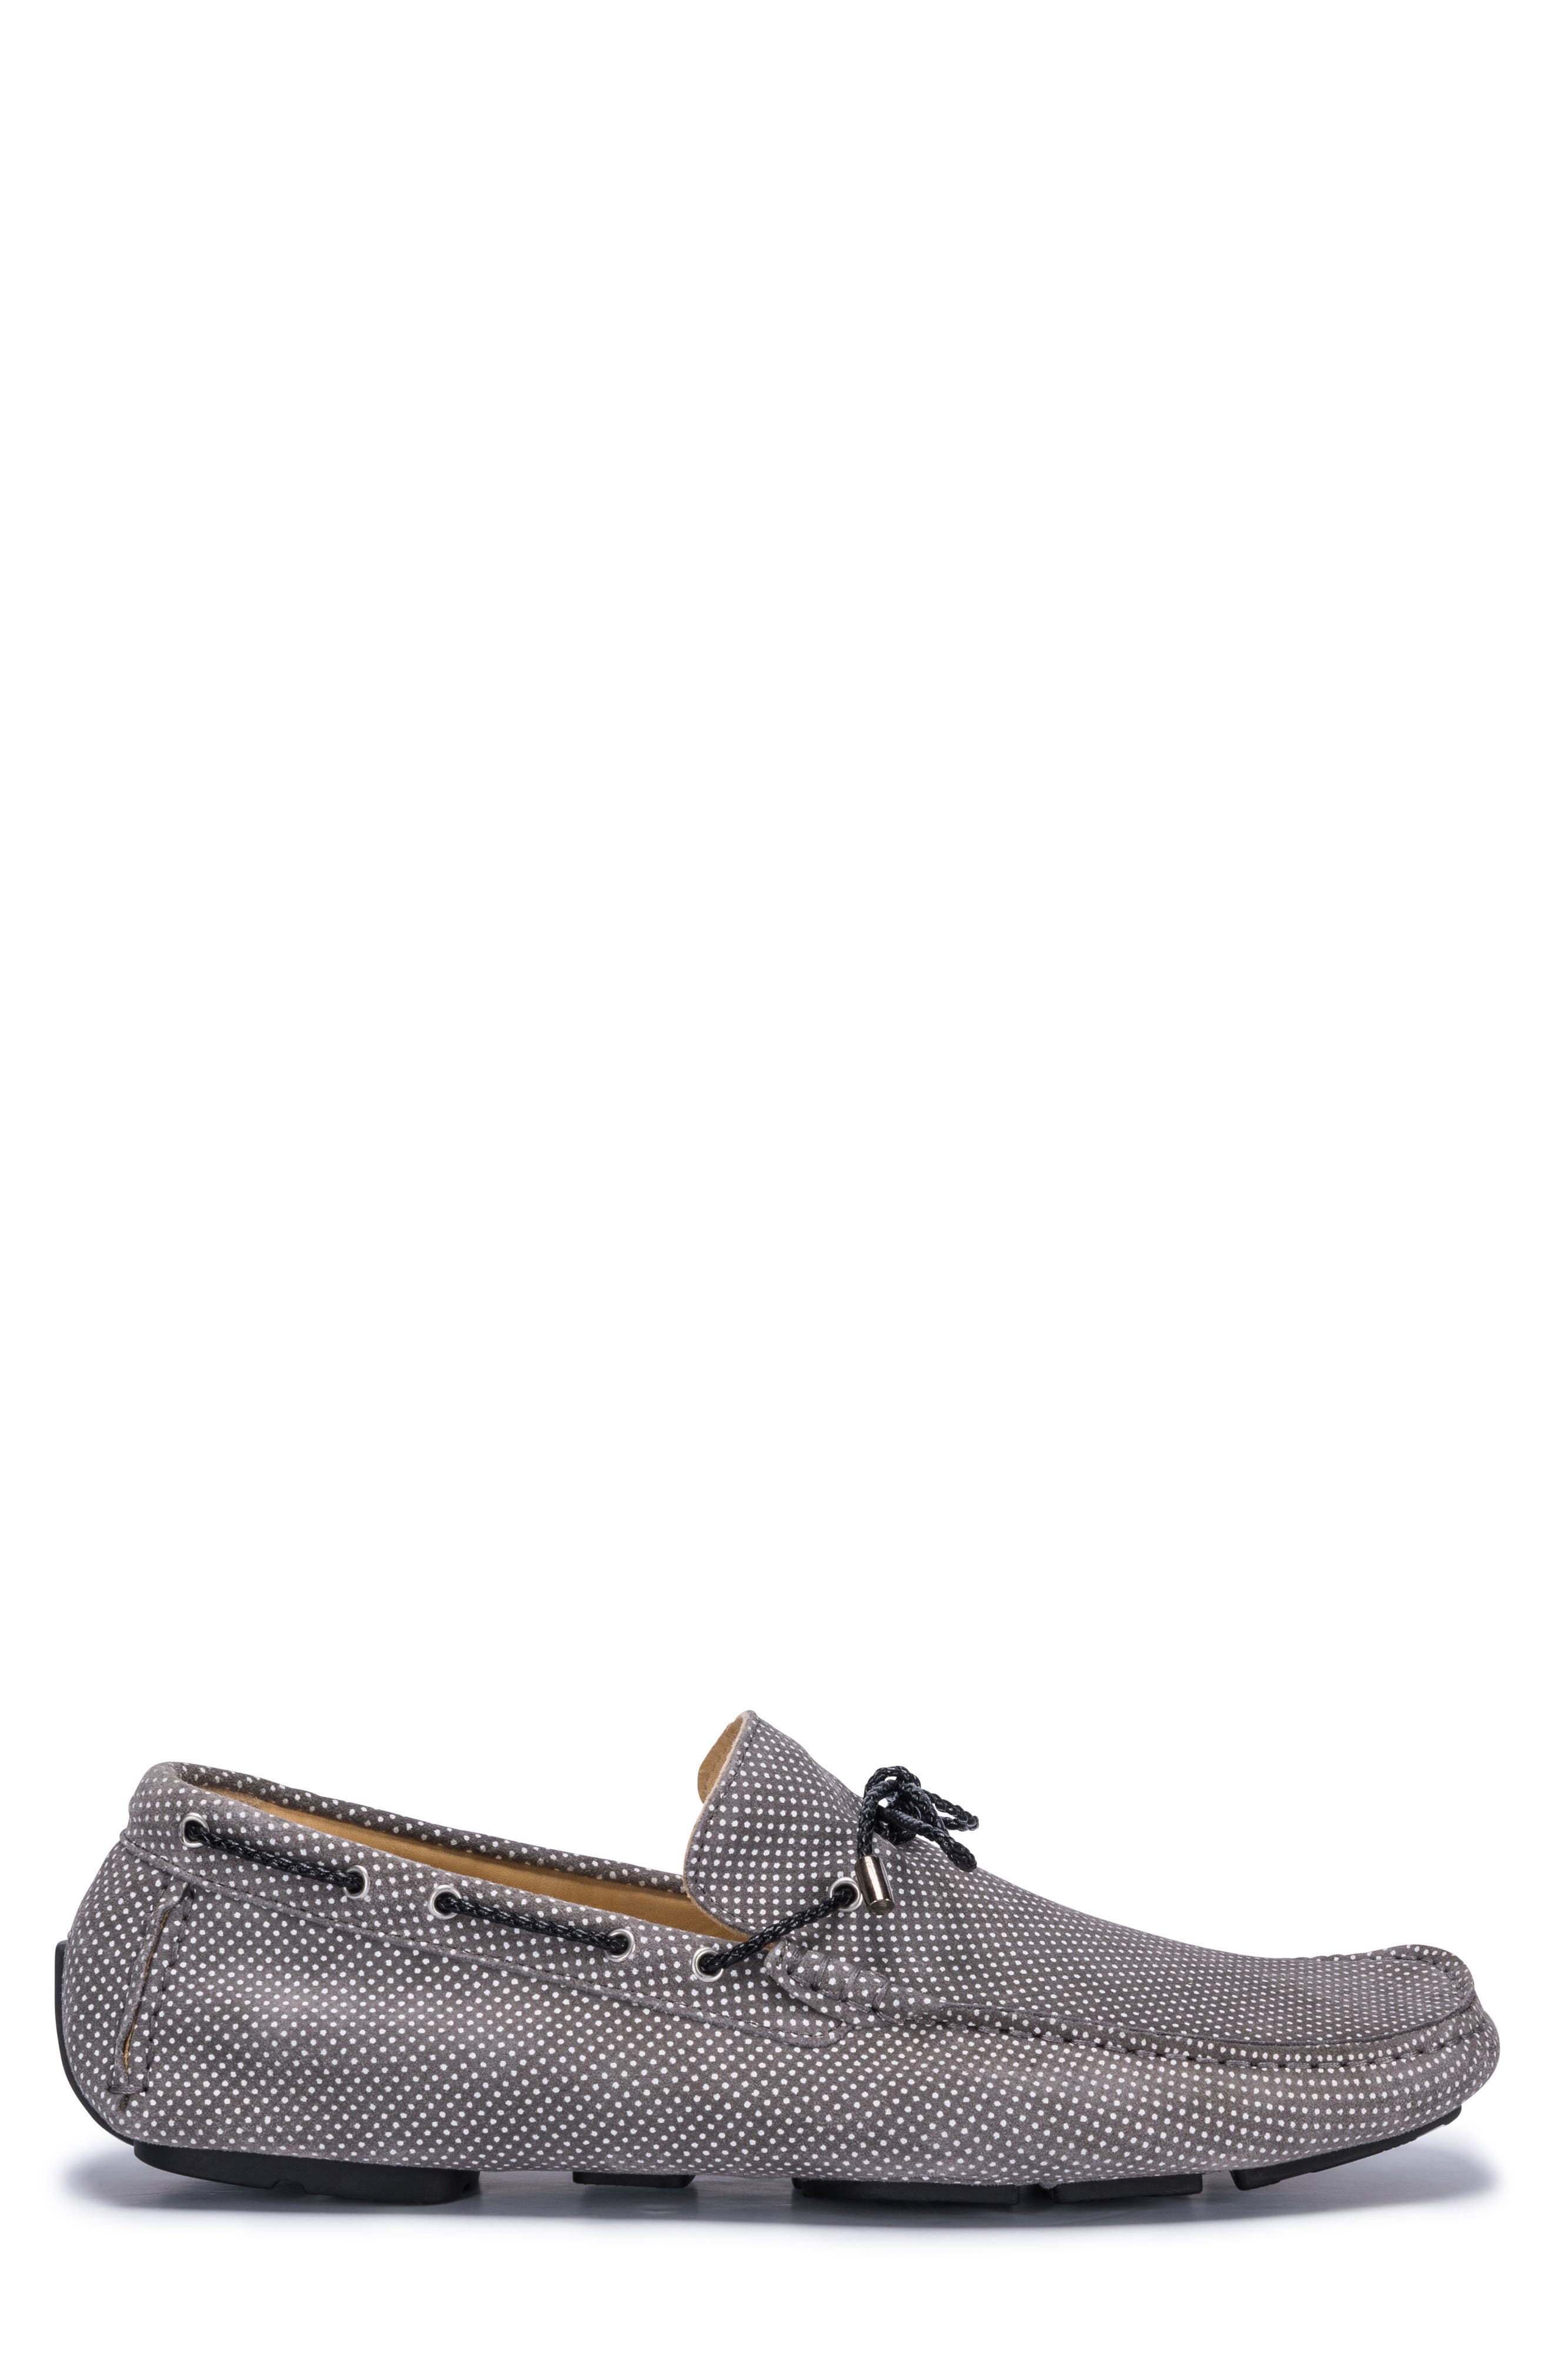 Sanremo Patterned Driving Loafer,                             Alternate thumbnail 3, color,                             GREY SUEDE